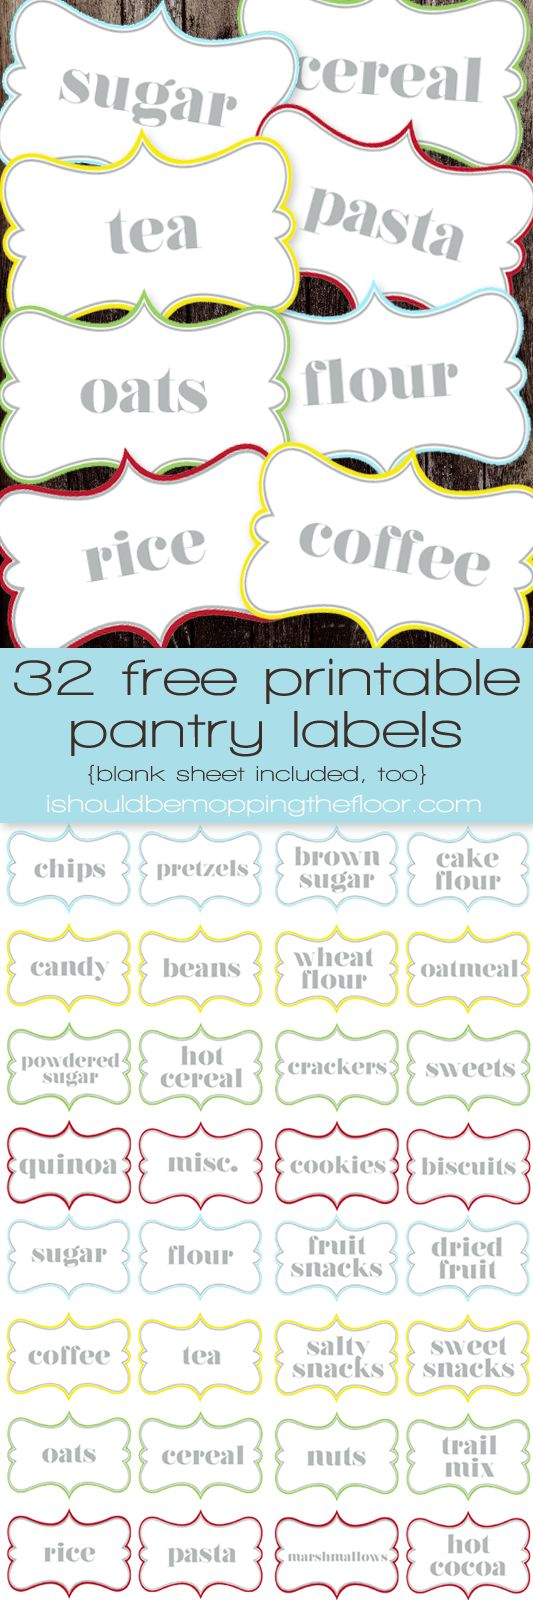 Free Printable Pantry Labels ~ 32 labels (plus a blank page) for organizing your pantry! | ishouldbemoppingthefloor.com